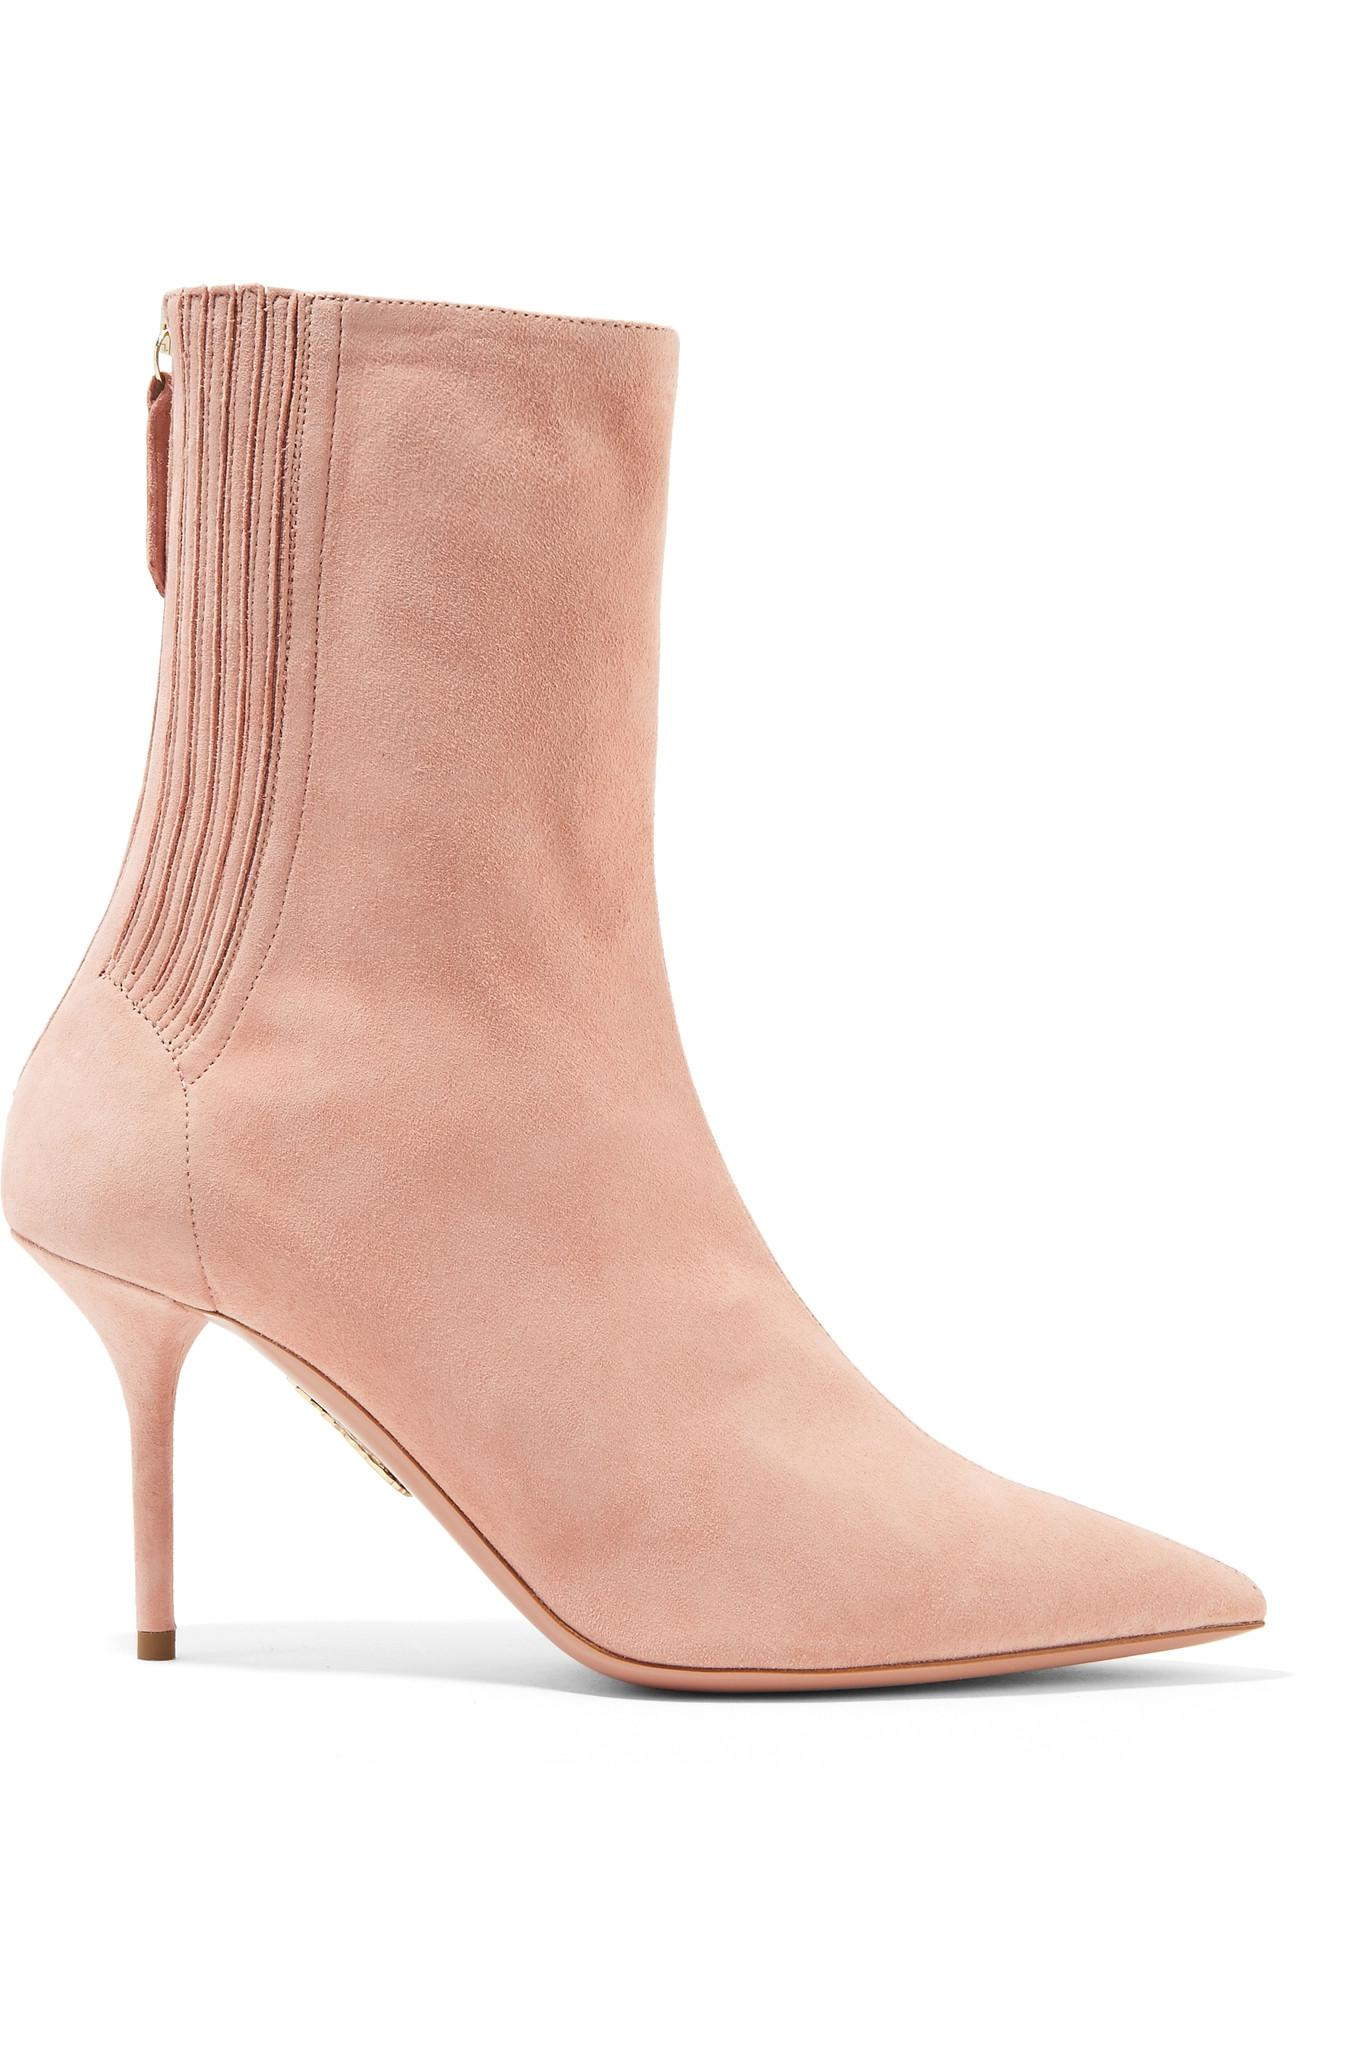 07c720ceb73f Lyst - Aquazzura Saint Honore Suede Sock Boots in Pink - Save 58%